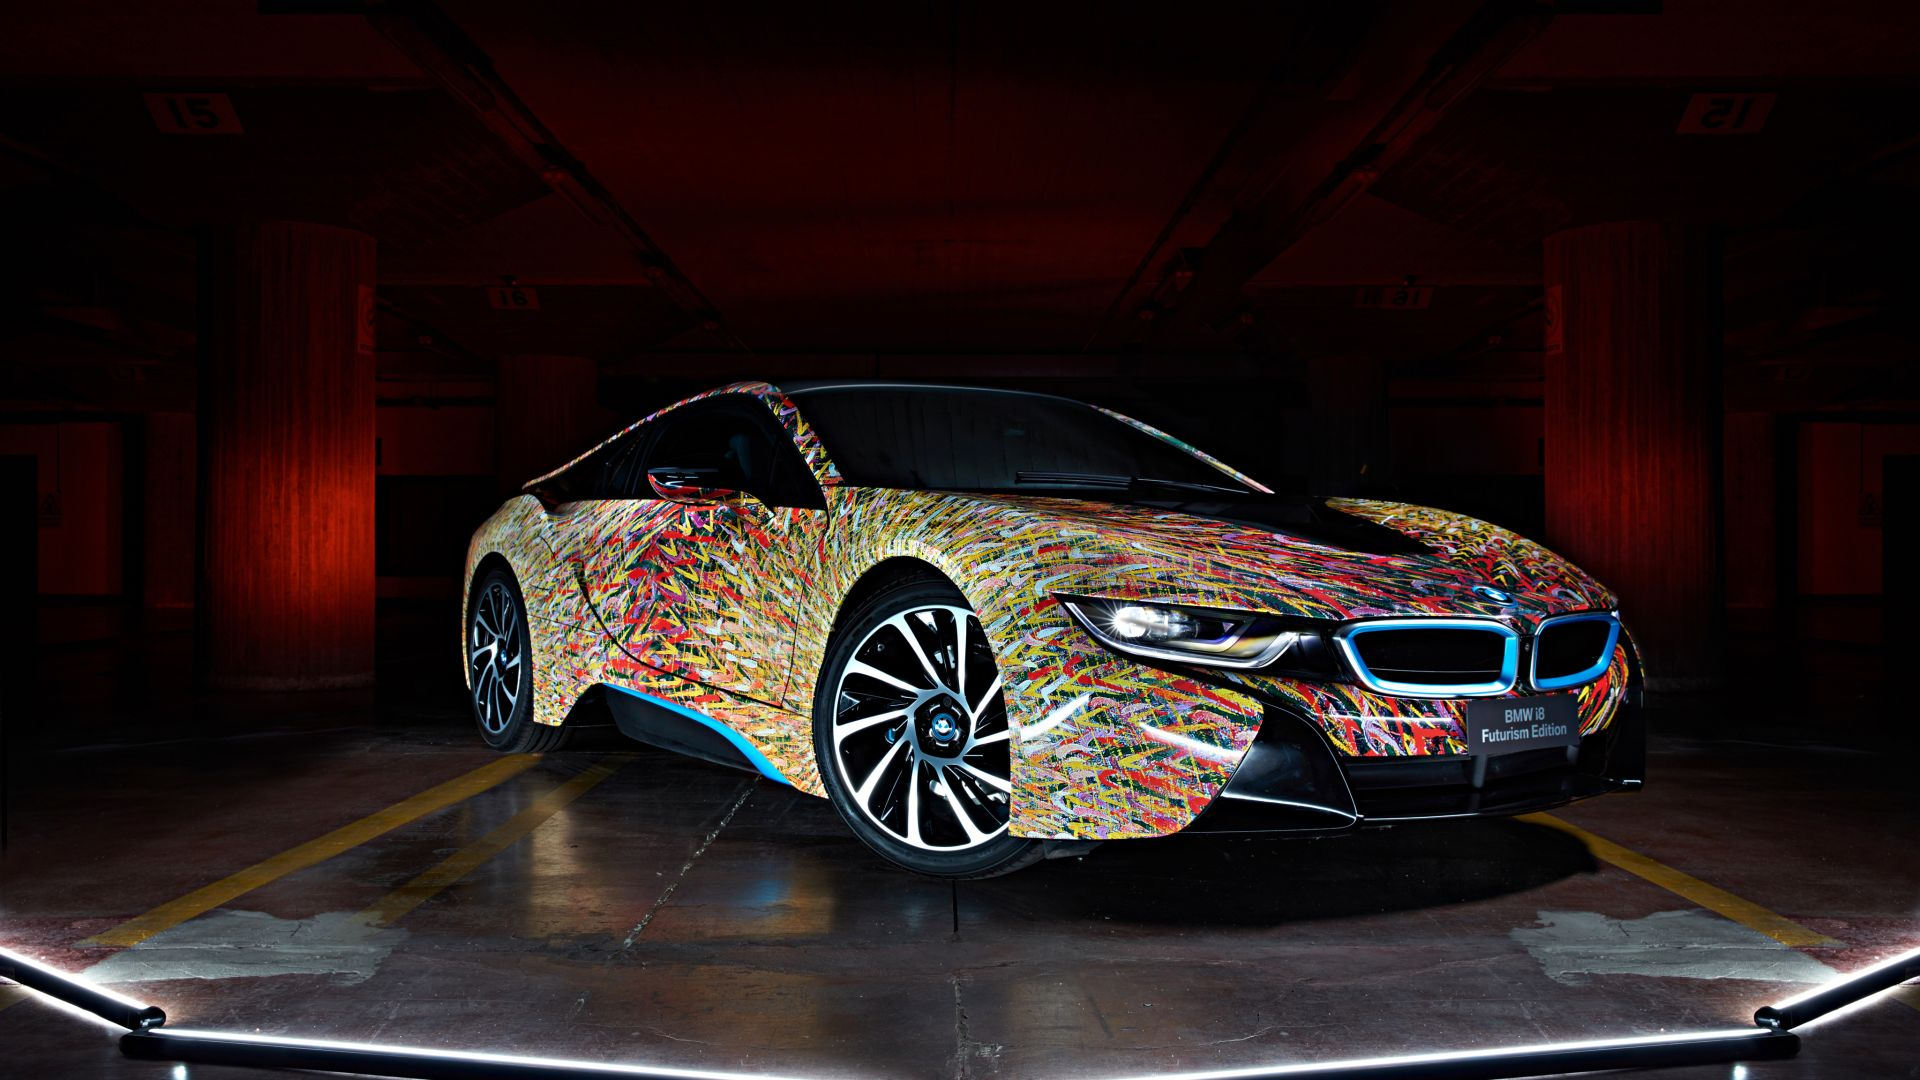 "BMW i8 ""Futurism Edition"", Garage Italia Customs, supercar (horizontal)"